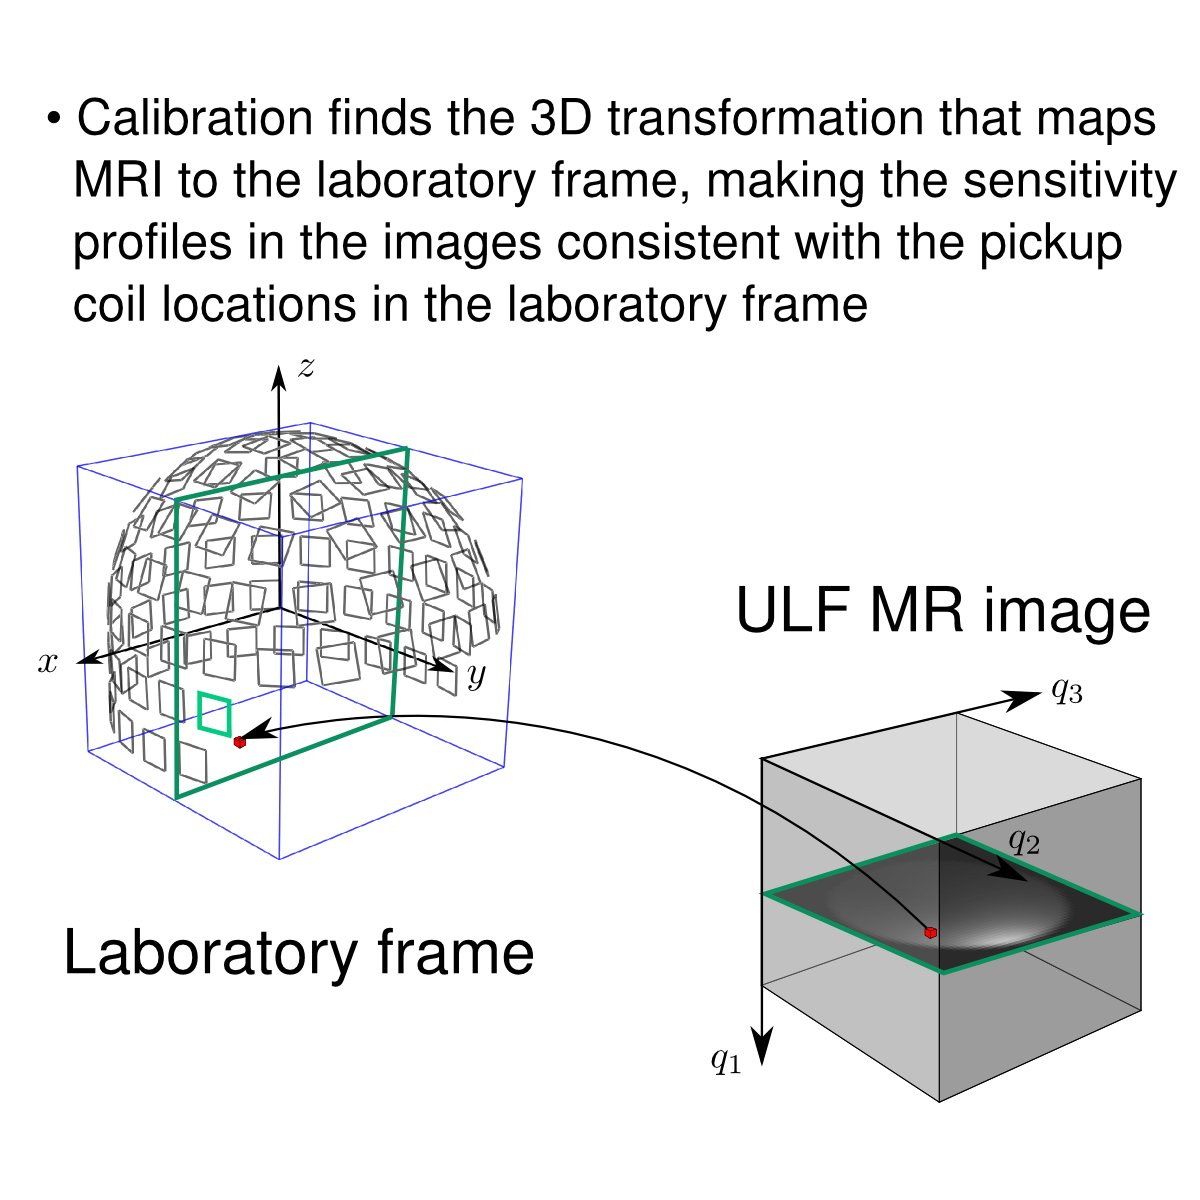 @abc_aalto @k7hoven (4) After calibration, MRI and MEG are in the same coordinate system. Minor nonlinear image distortions can be detected, too. #brainTC https://t.co/G0edK3kiA7